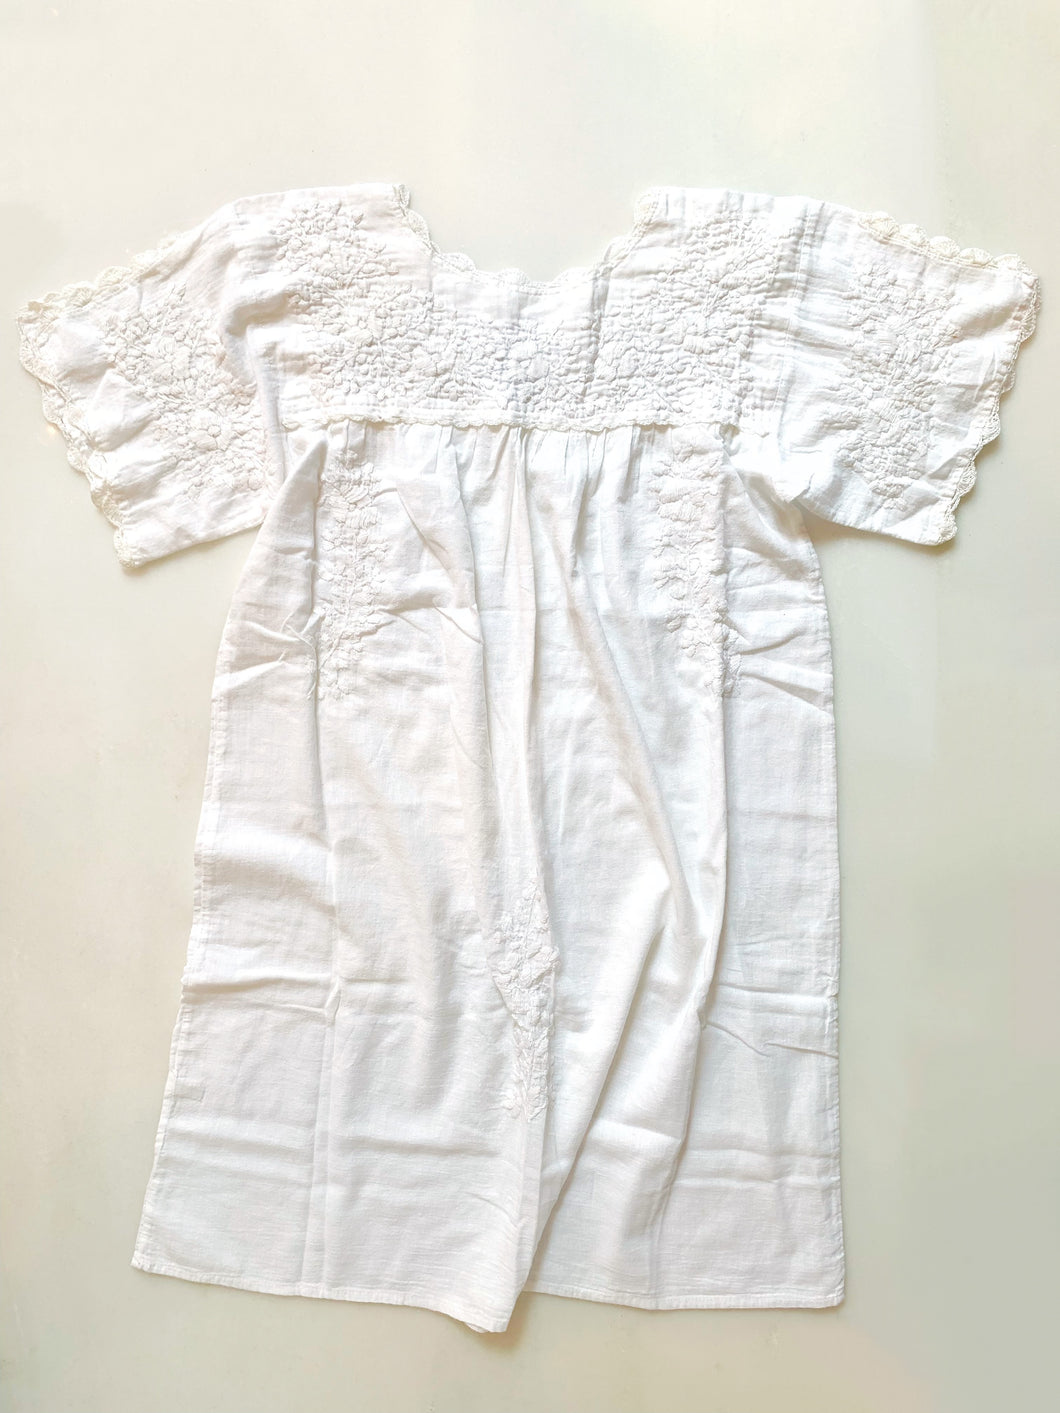 Oaxaca Dress - Split Sleeve (White with White)